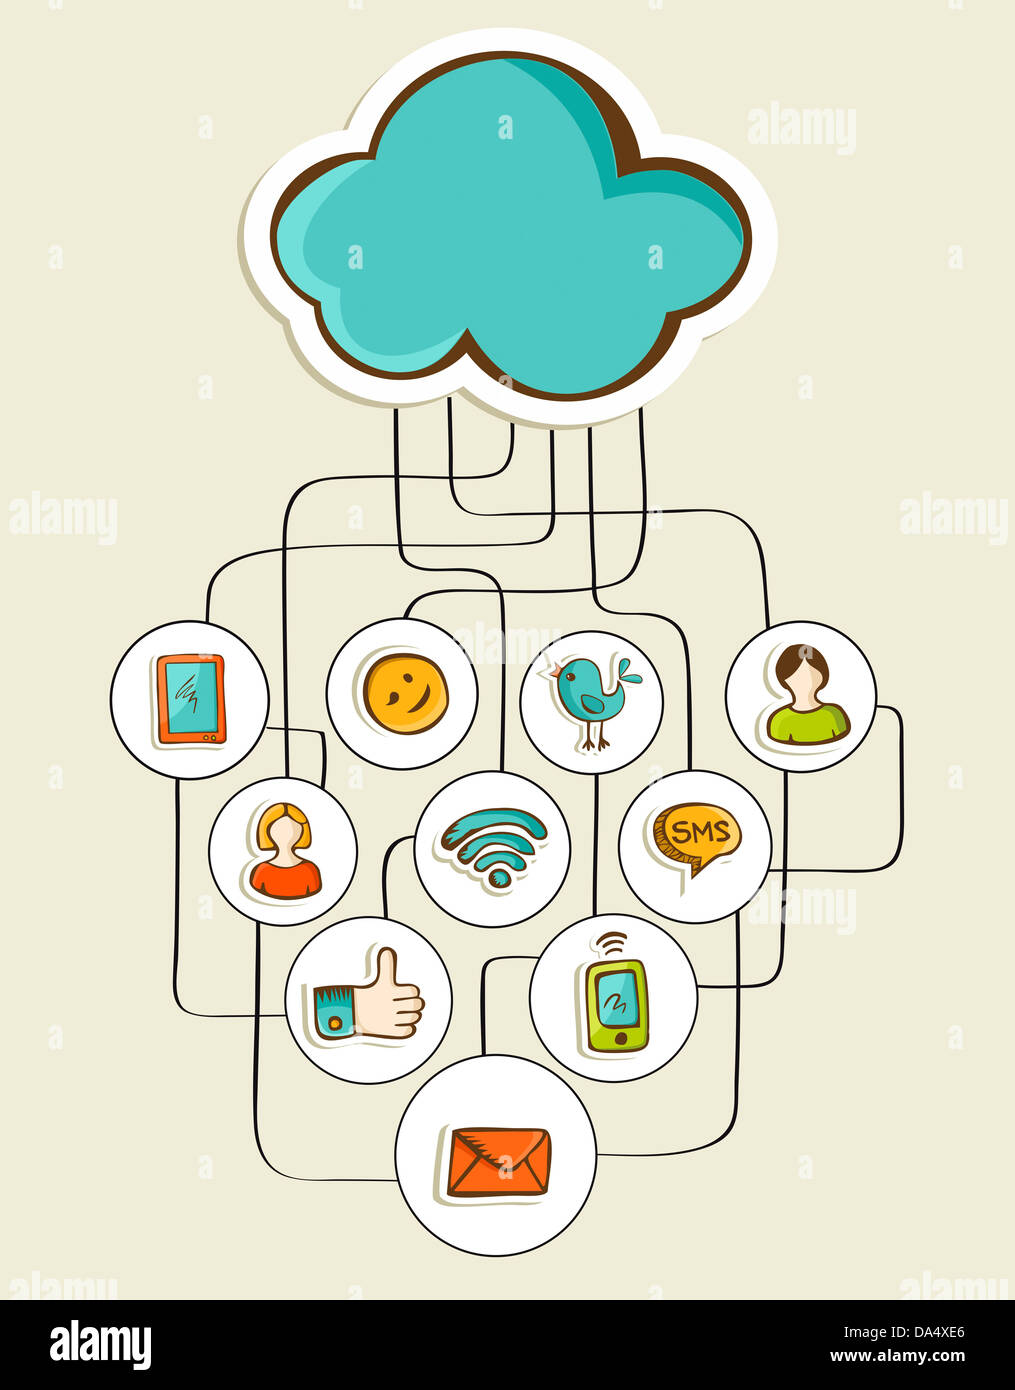 Cloud computing hand drawn social network diagram vector stock cloud computing hand drawn social network diagram vector illustration layered for easy manipulation and custom coloring ccuart Images